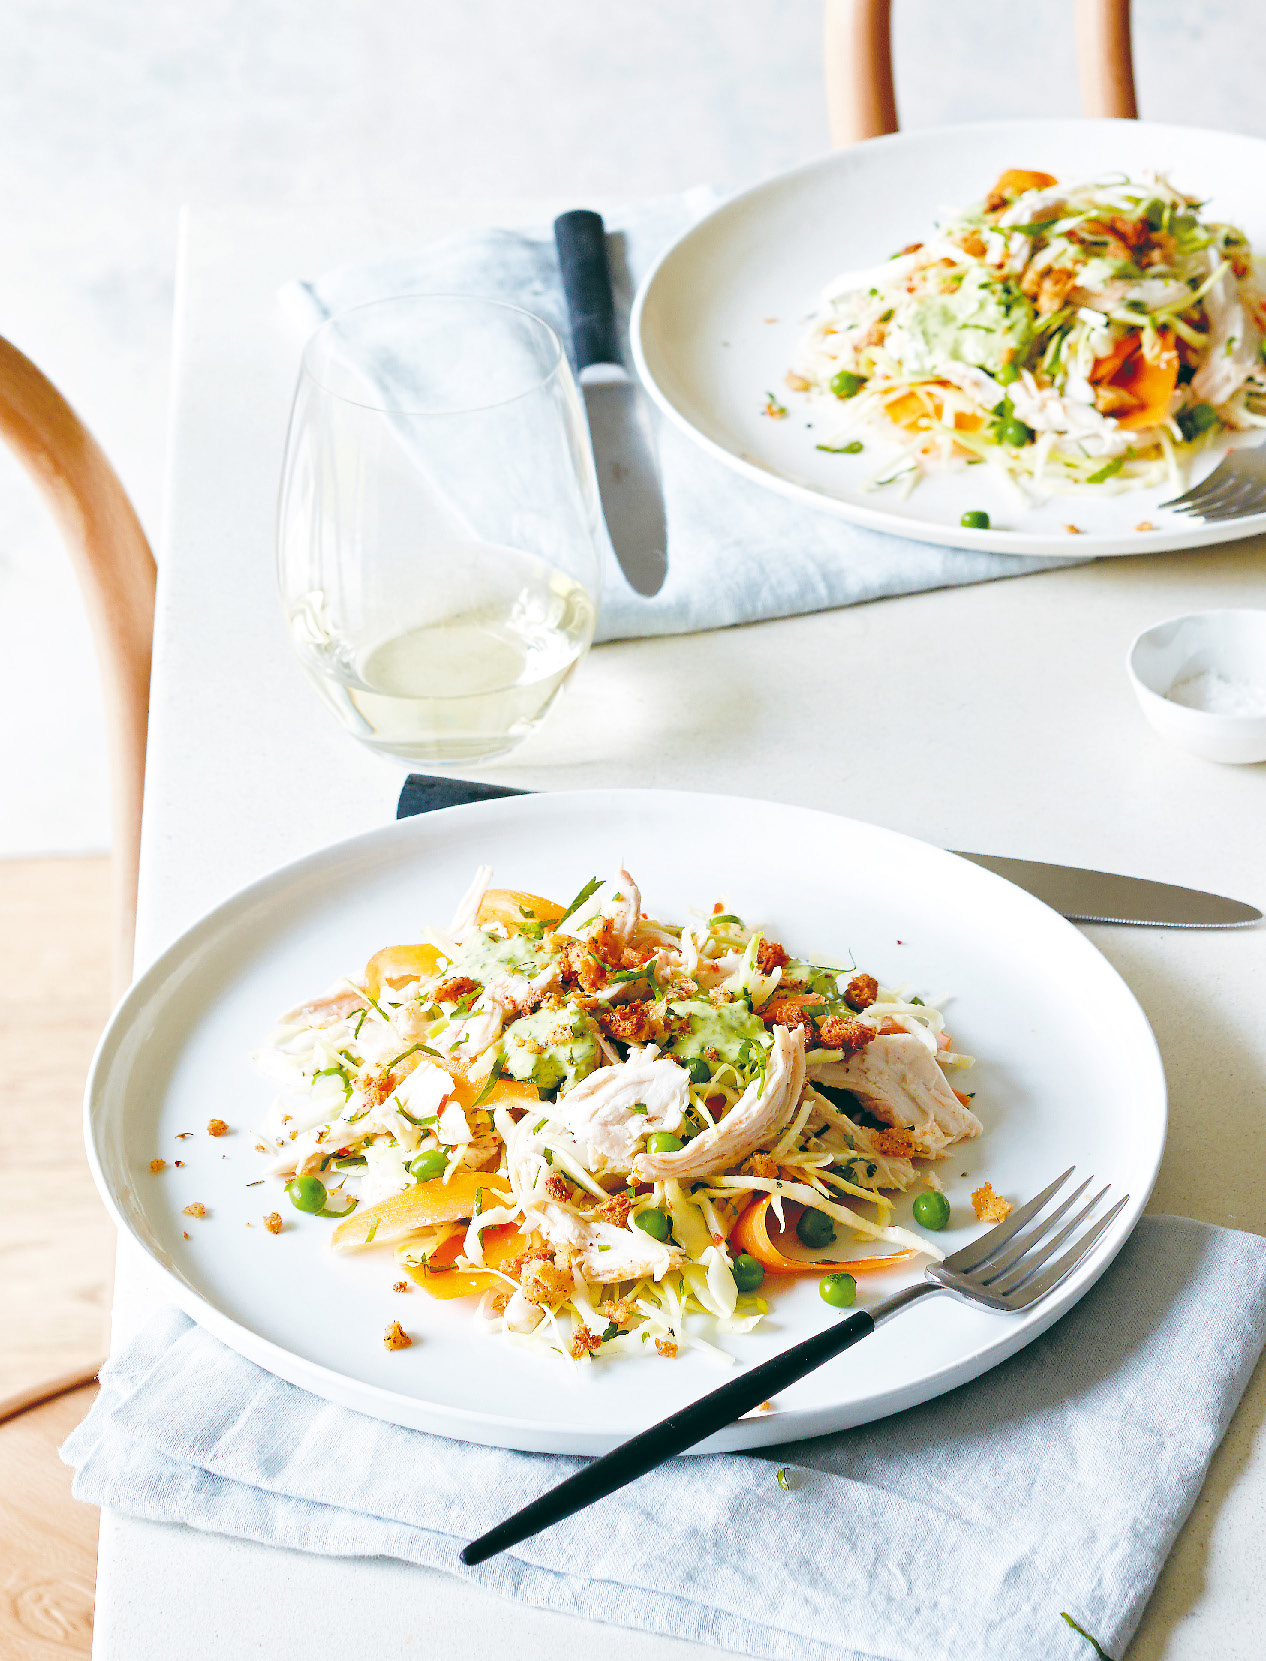 Roast chicken slaw with green goddess dressing and za'atar crumbs